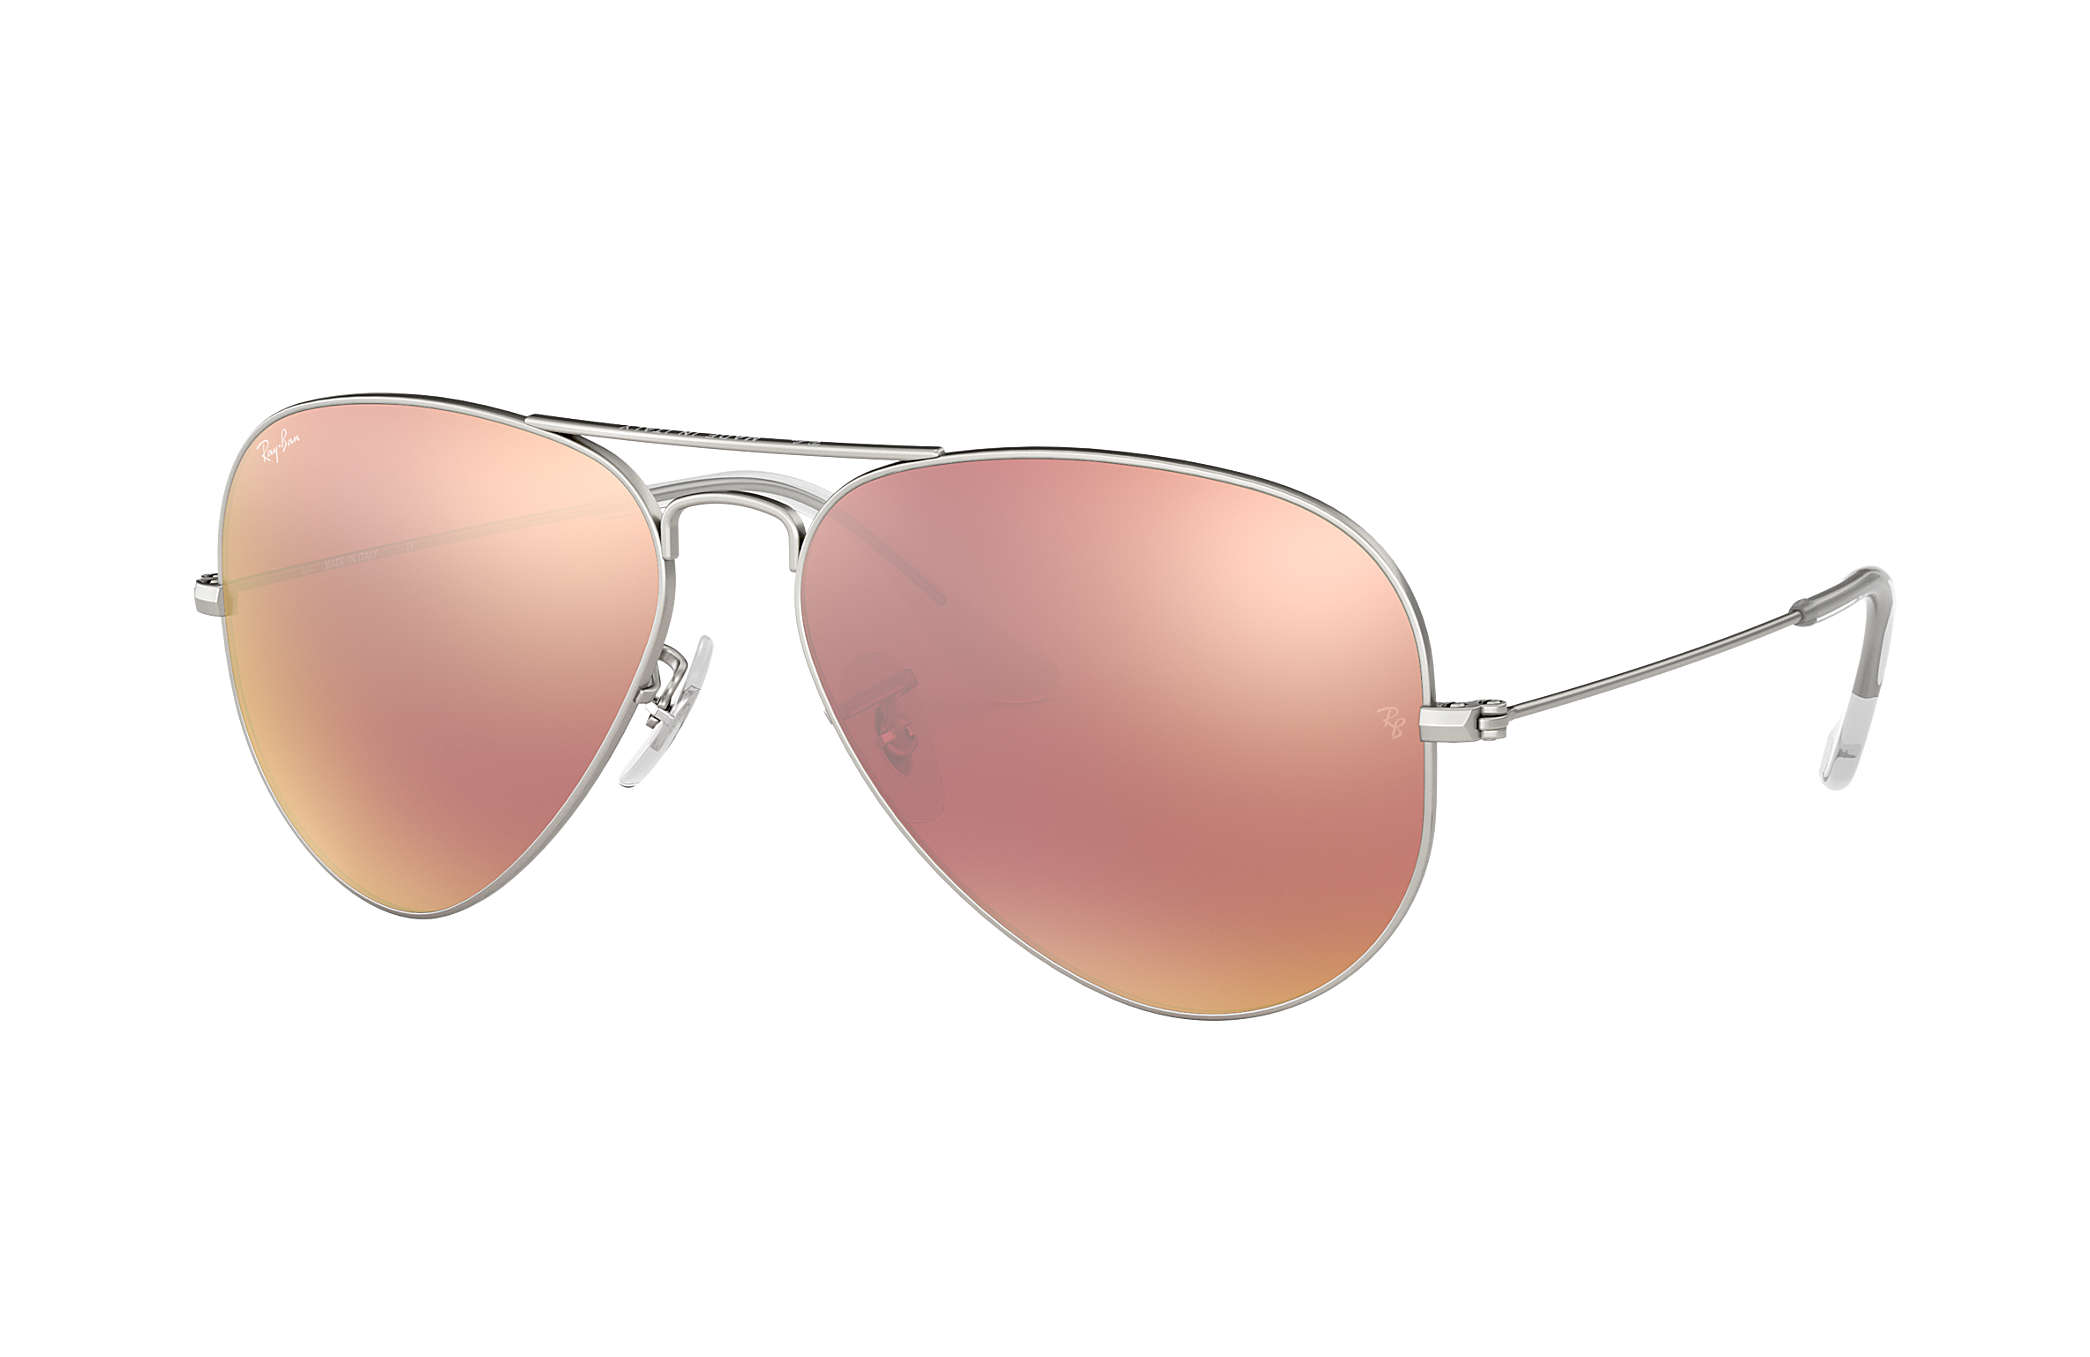 9540c5f25f2 Ray-Ban Aviator Flash Lenses RB3025 Silver - Metal - Copper Lenses ...